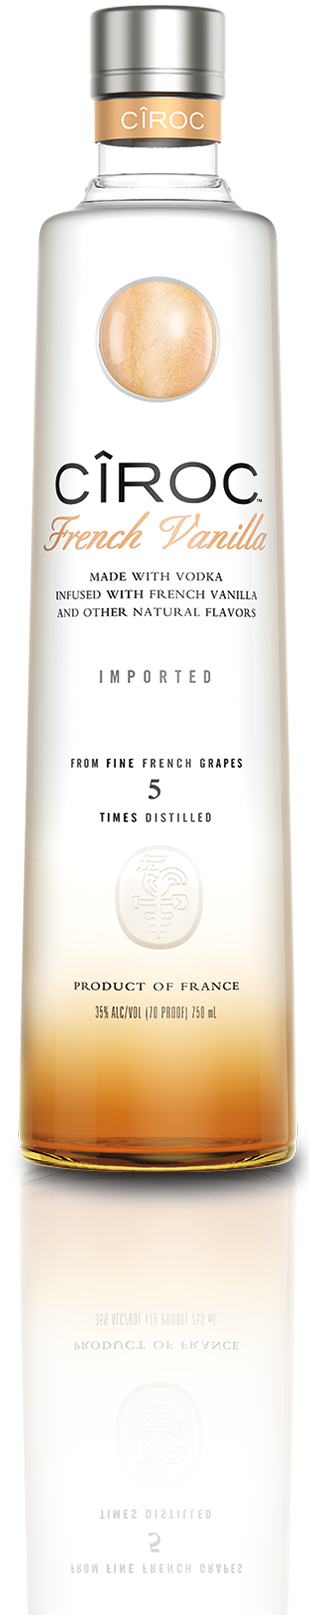 CÎROC Celebrates Global Launch of CÎROC French Vanilla